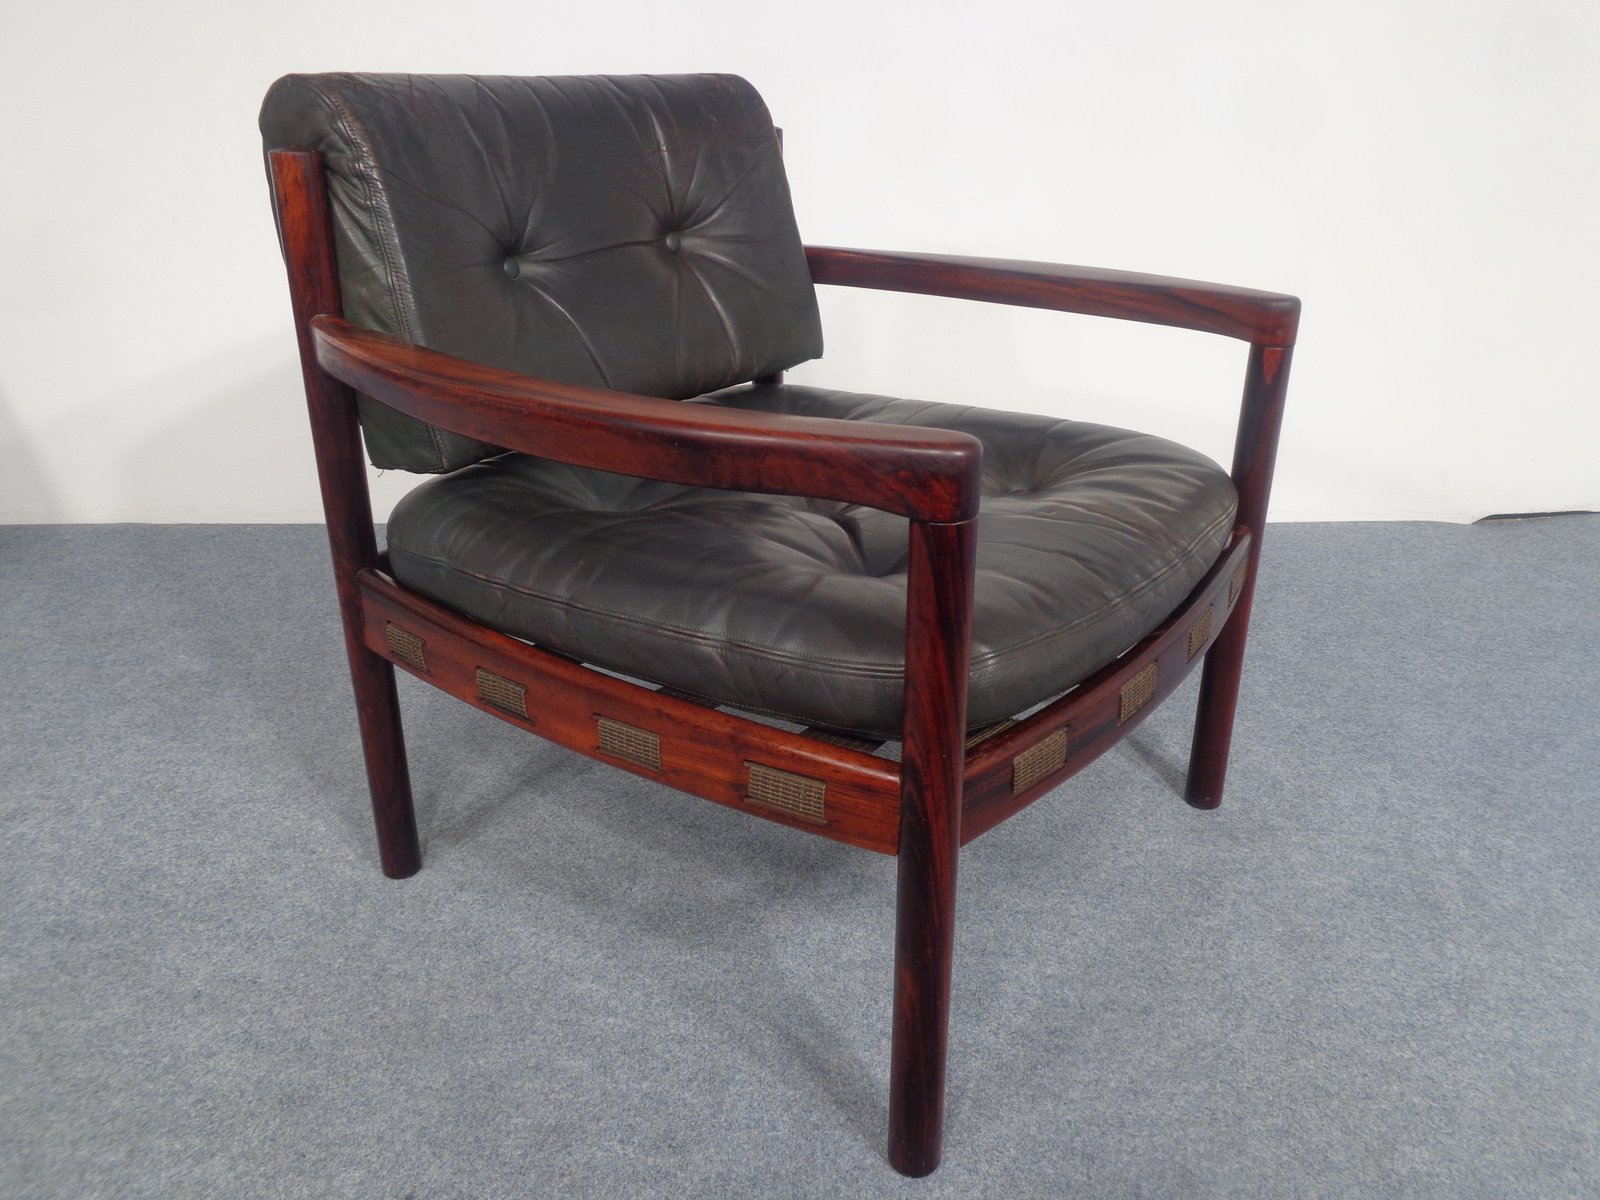 Mid Century Swedish Rosewood And Black Leather Armchair By Arne Norell,  1960s